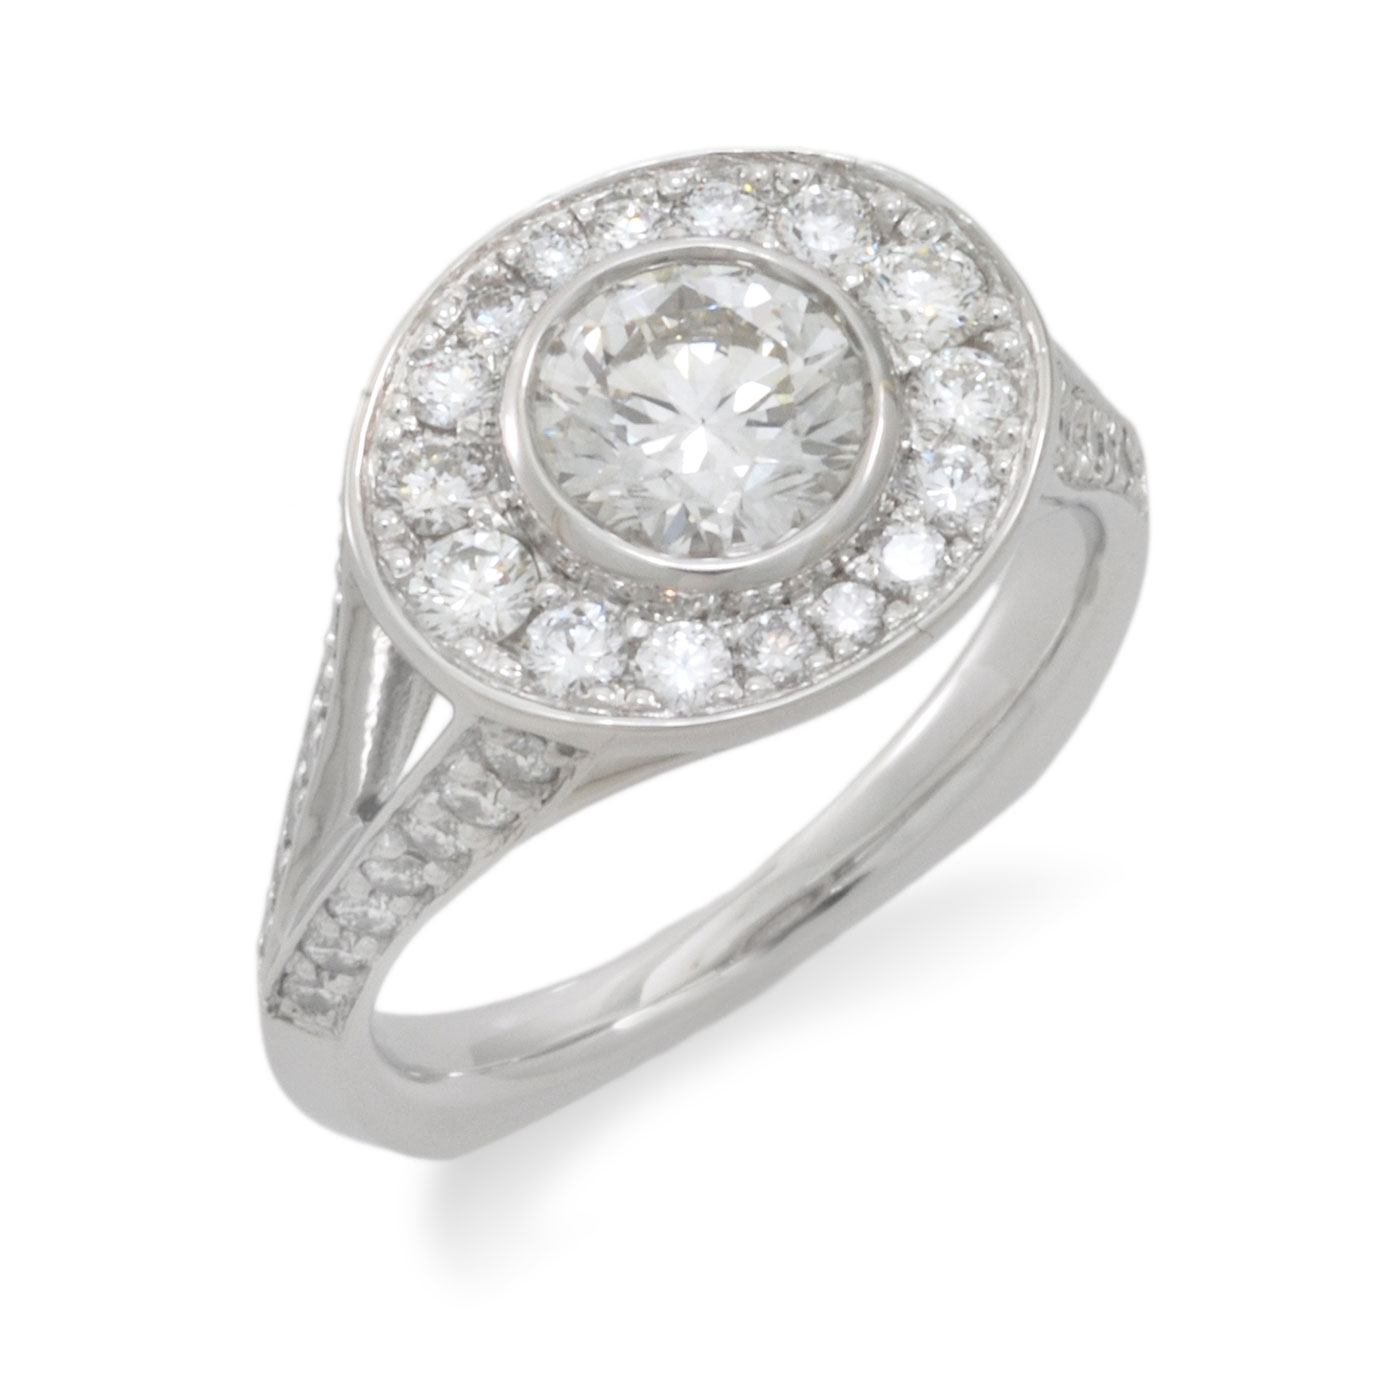 C5483 Oval Halo Ring